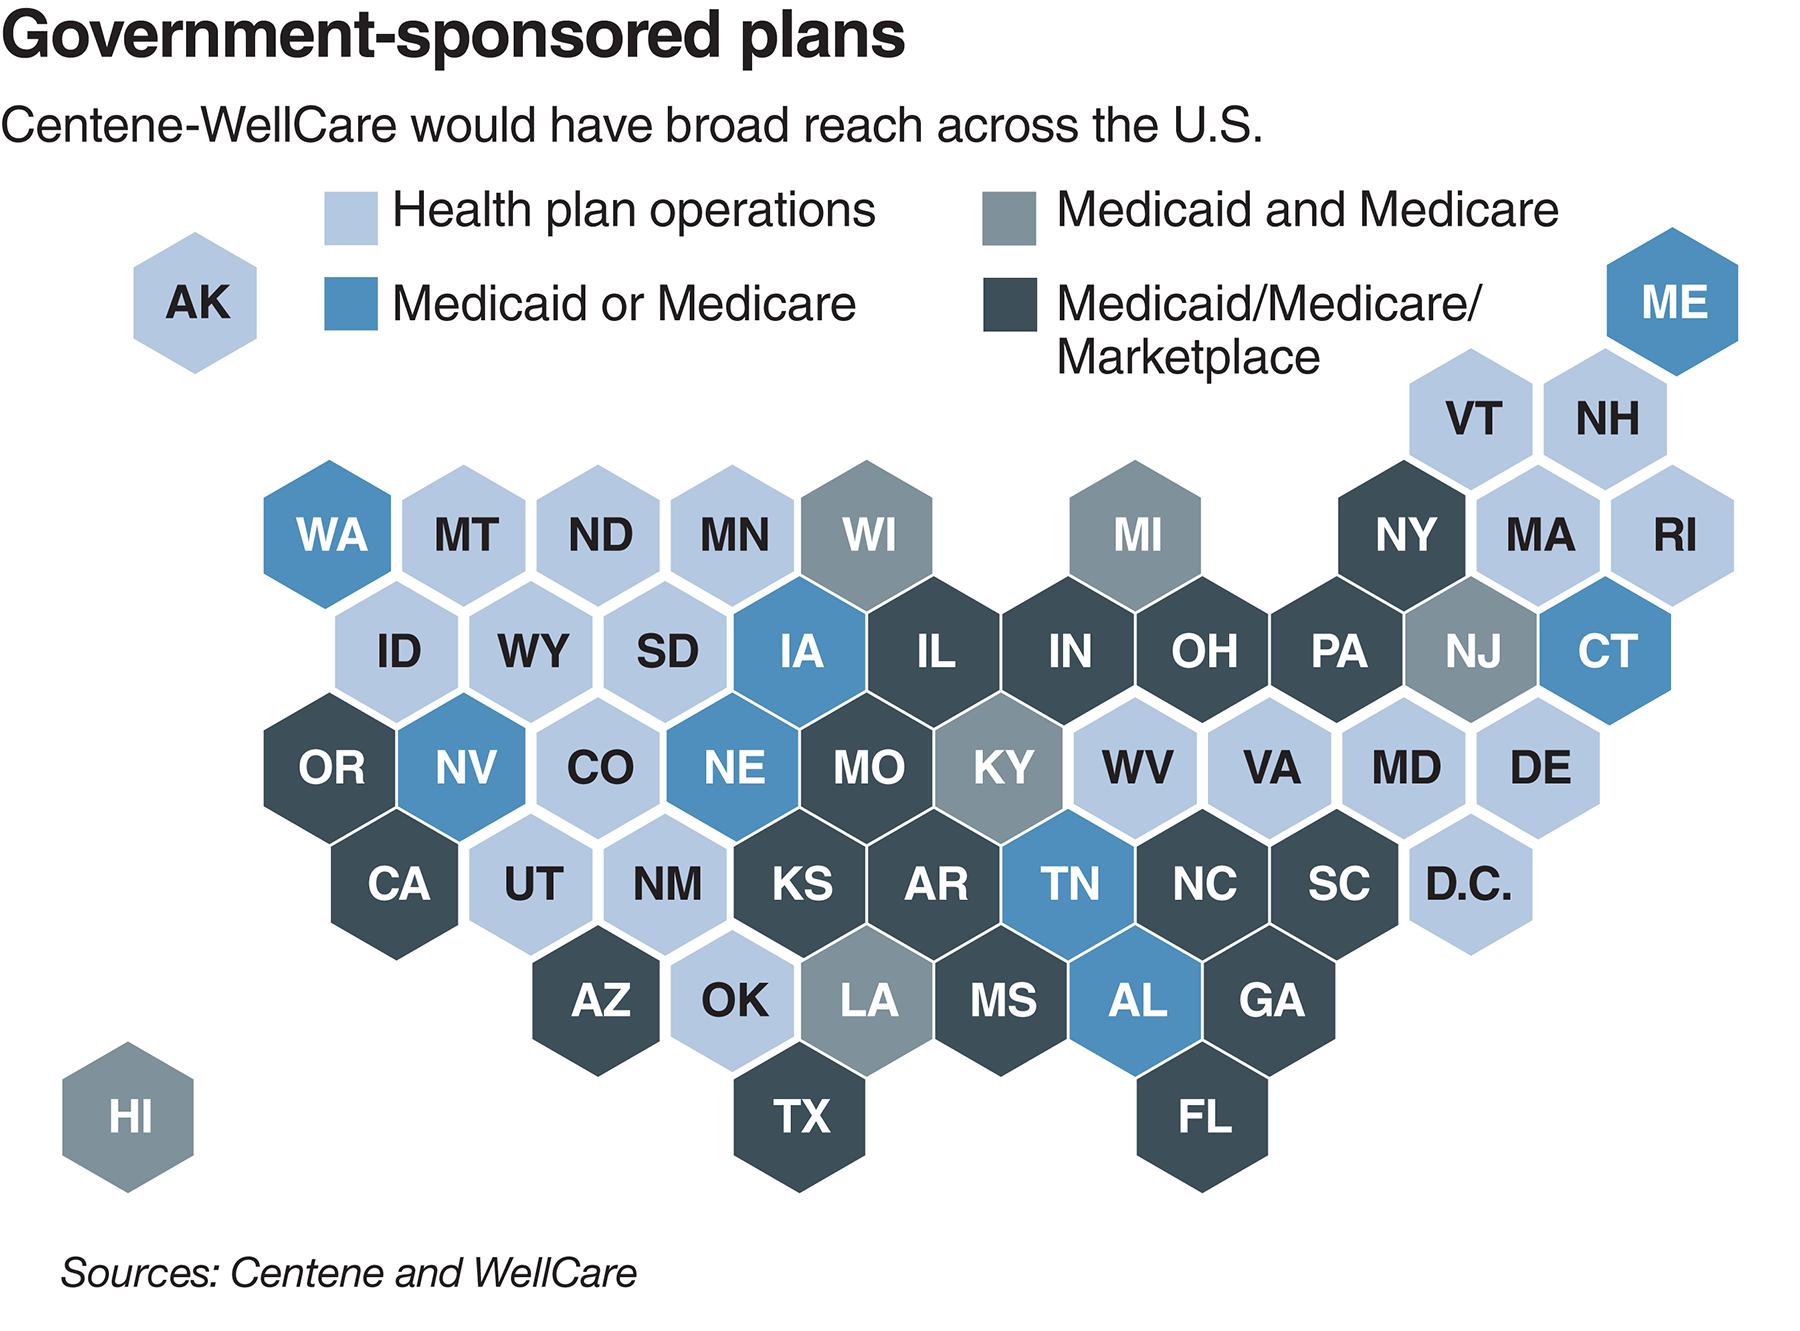 Centene-WellCare would have broad reach across the U.S.